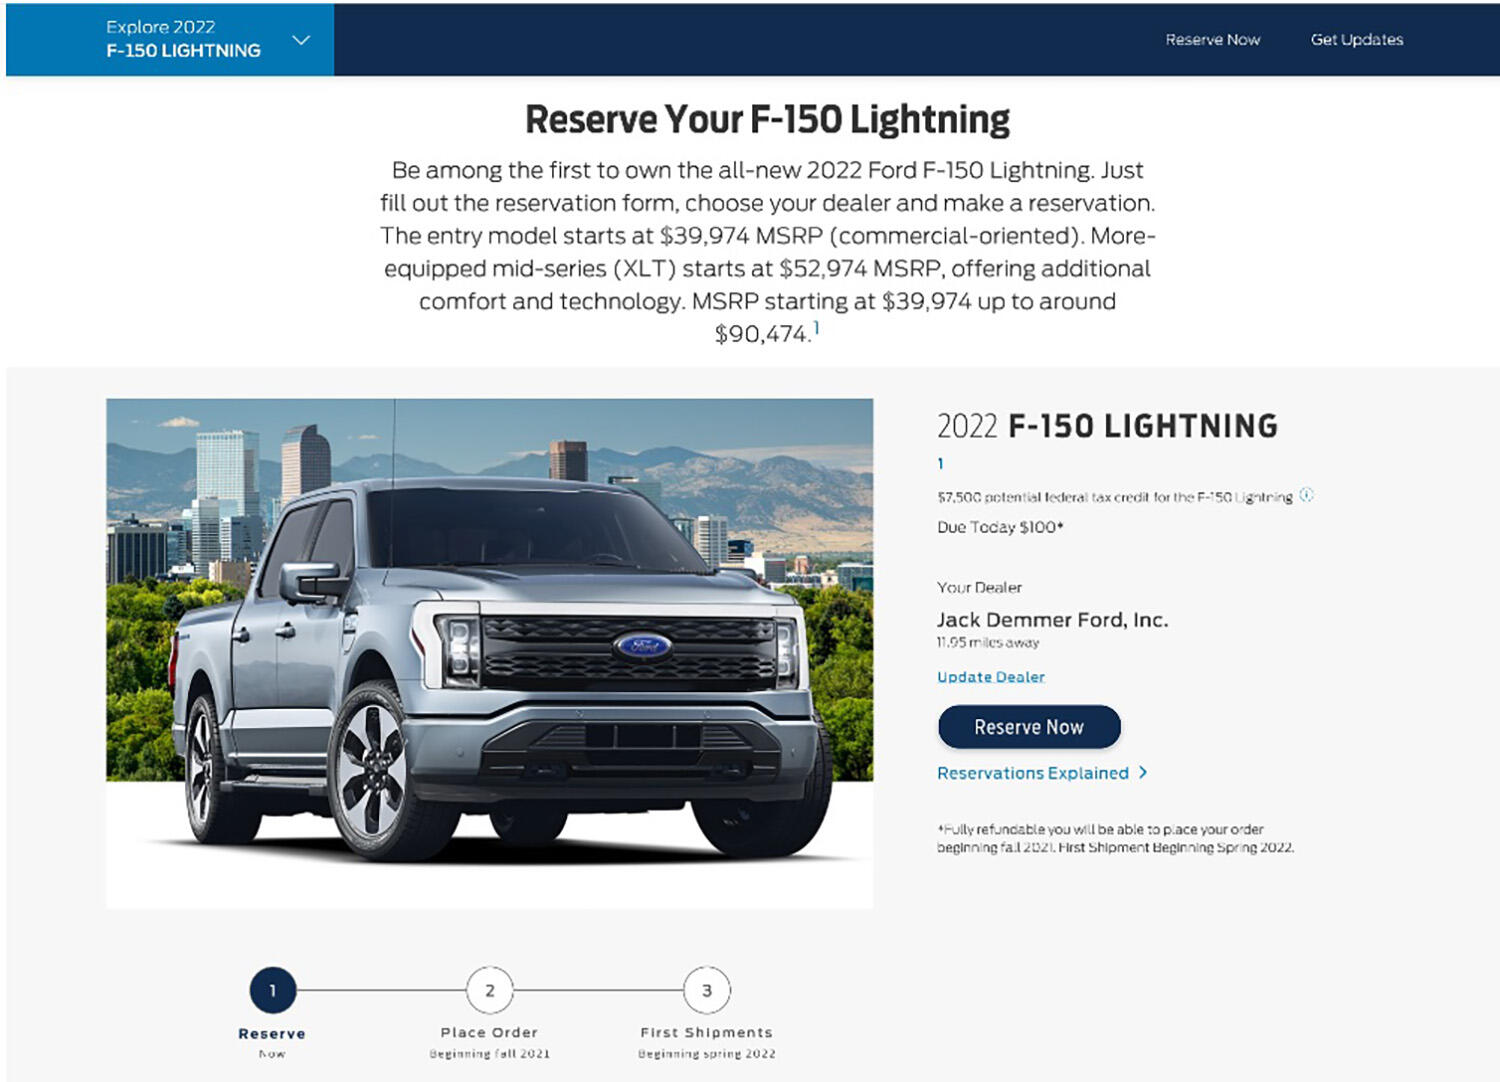 2022 Ford F-150 reservation